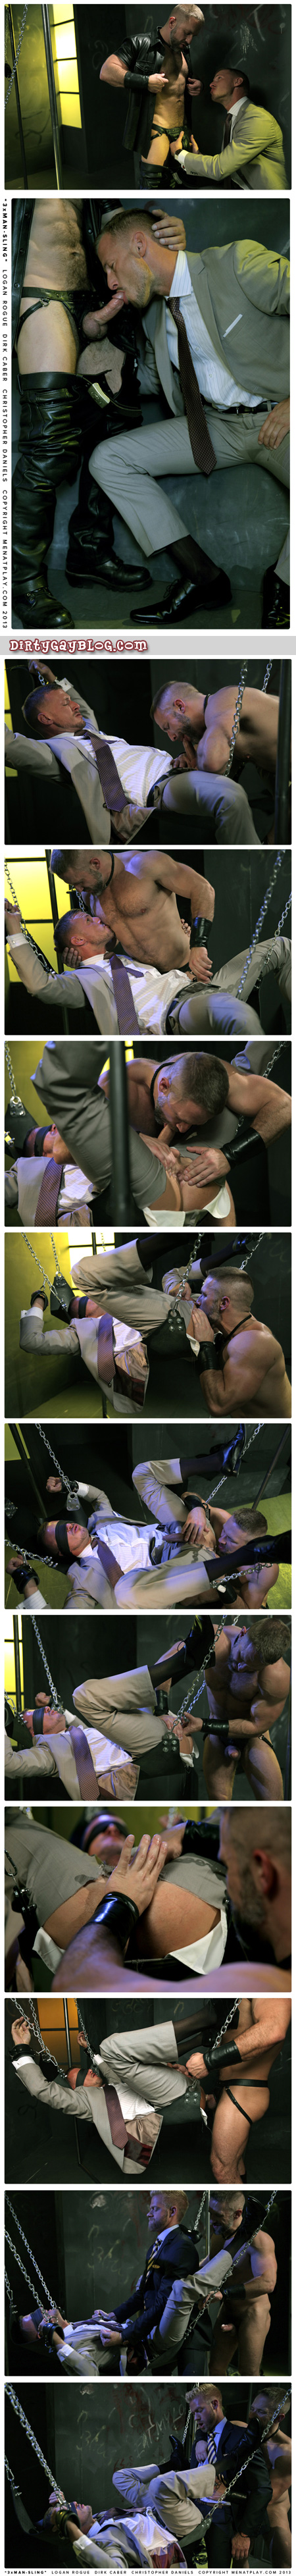 A scruffy businessman gets fucked by a leatherman and a guy in a suit and tie in a leather sling at a gay sex club.